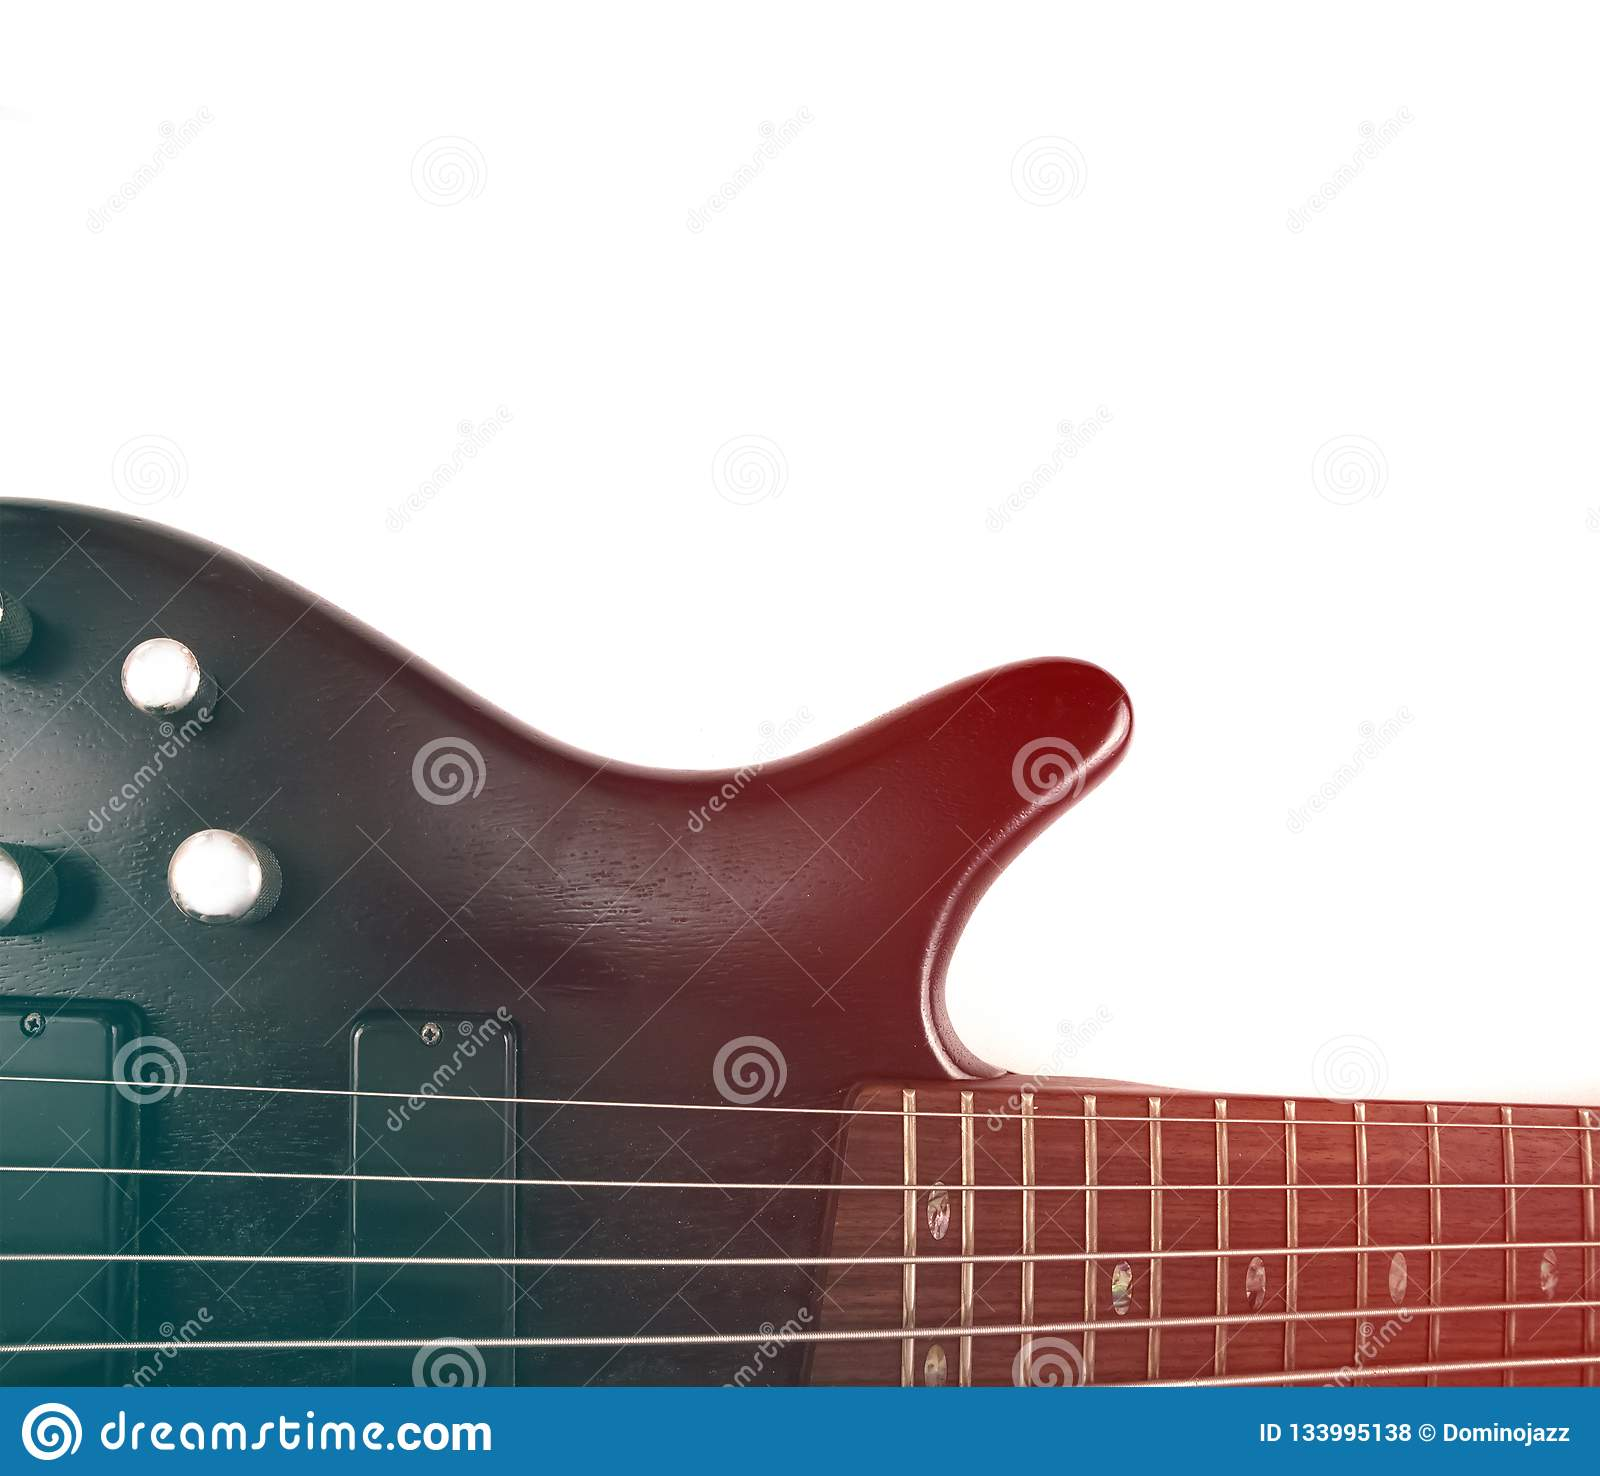 rosewood bass guitar deck and neck with frets and strings with gradient effect stock photo. Black Bedroom Furniture Sets. Home Design Ideas